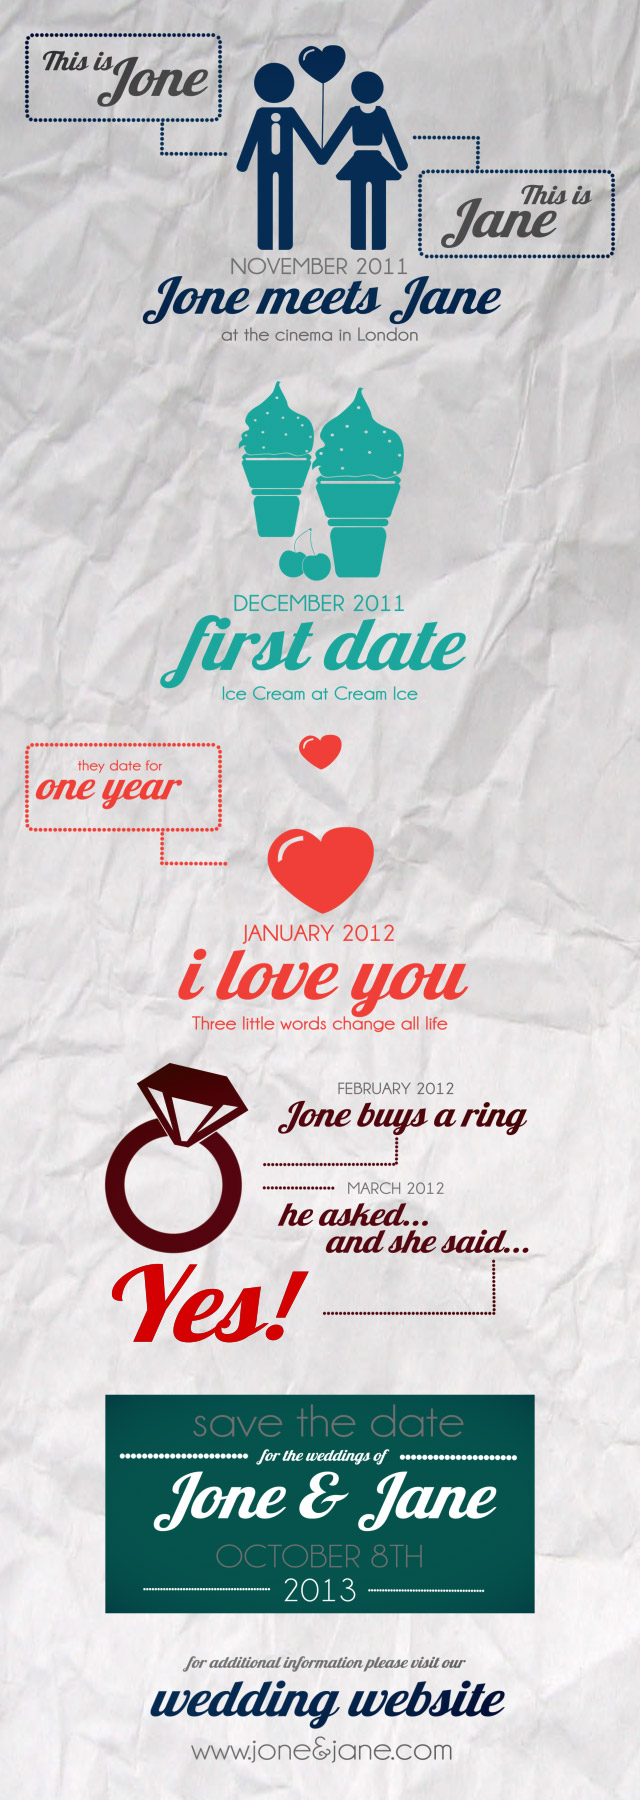 Save The Date - Wedding Invitation - 2